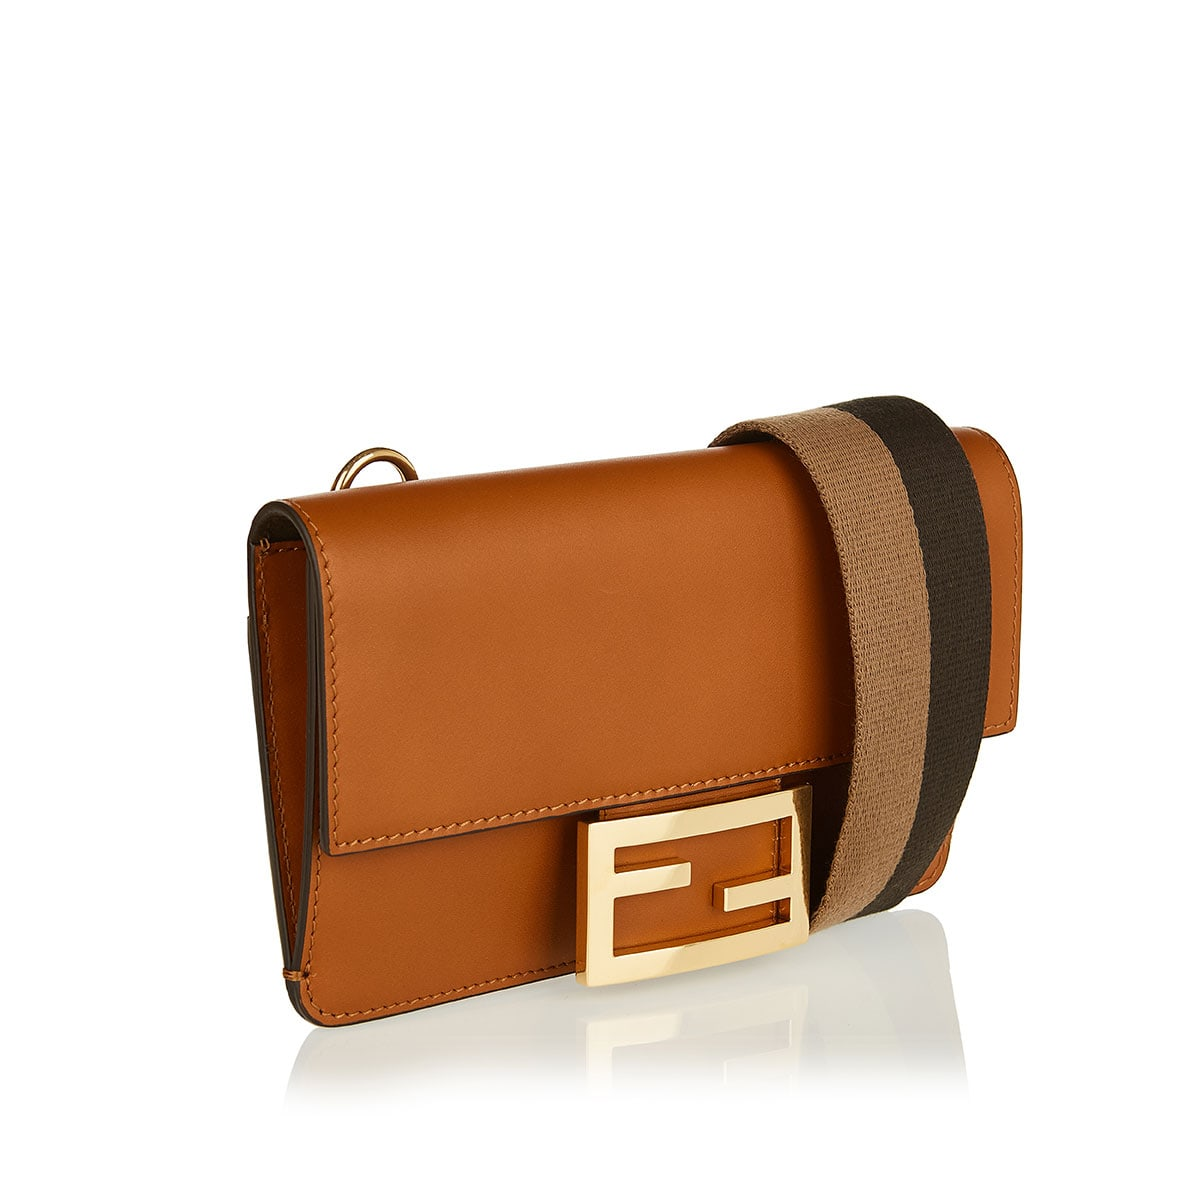 Flat baguette leather mini bag